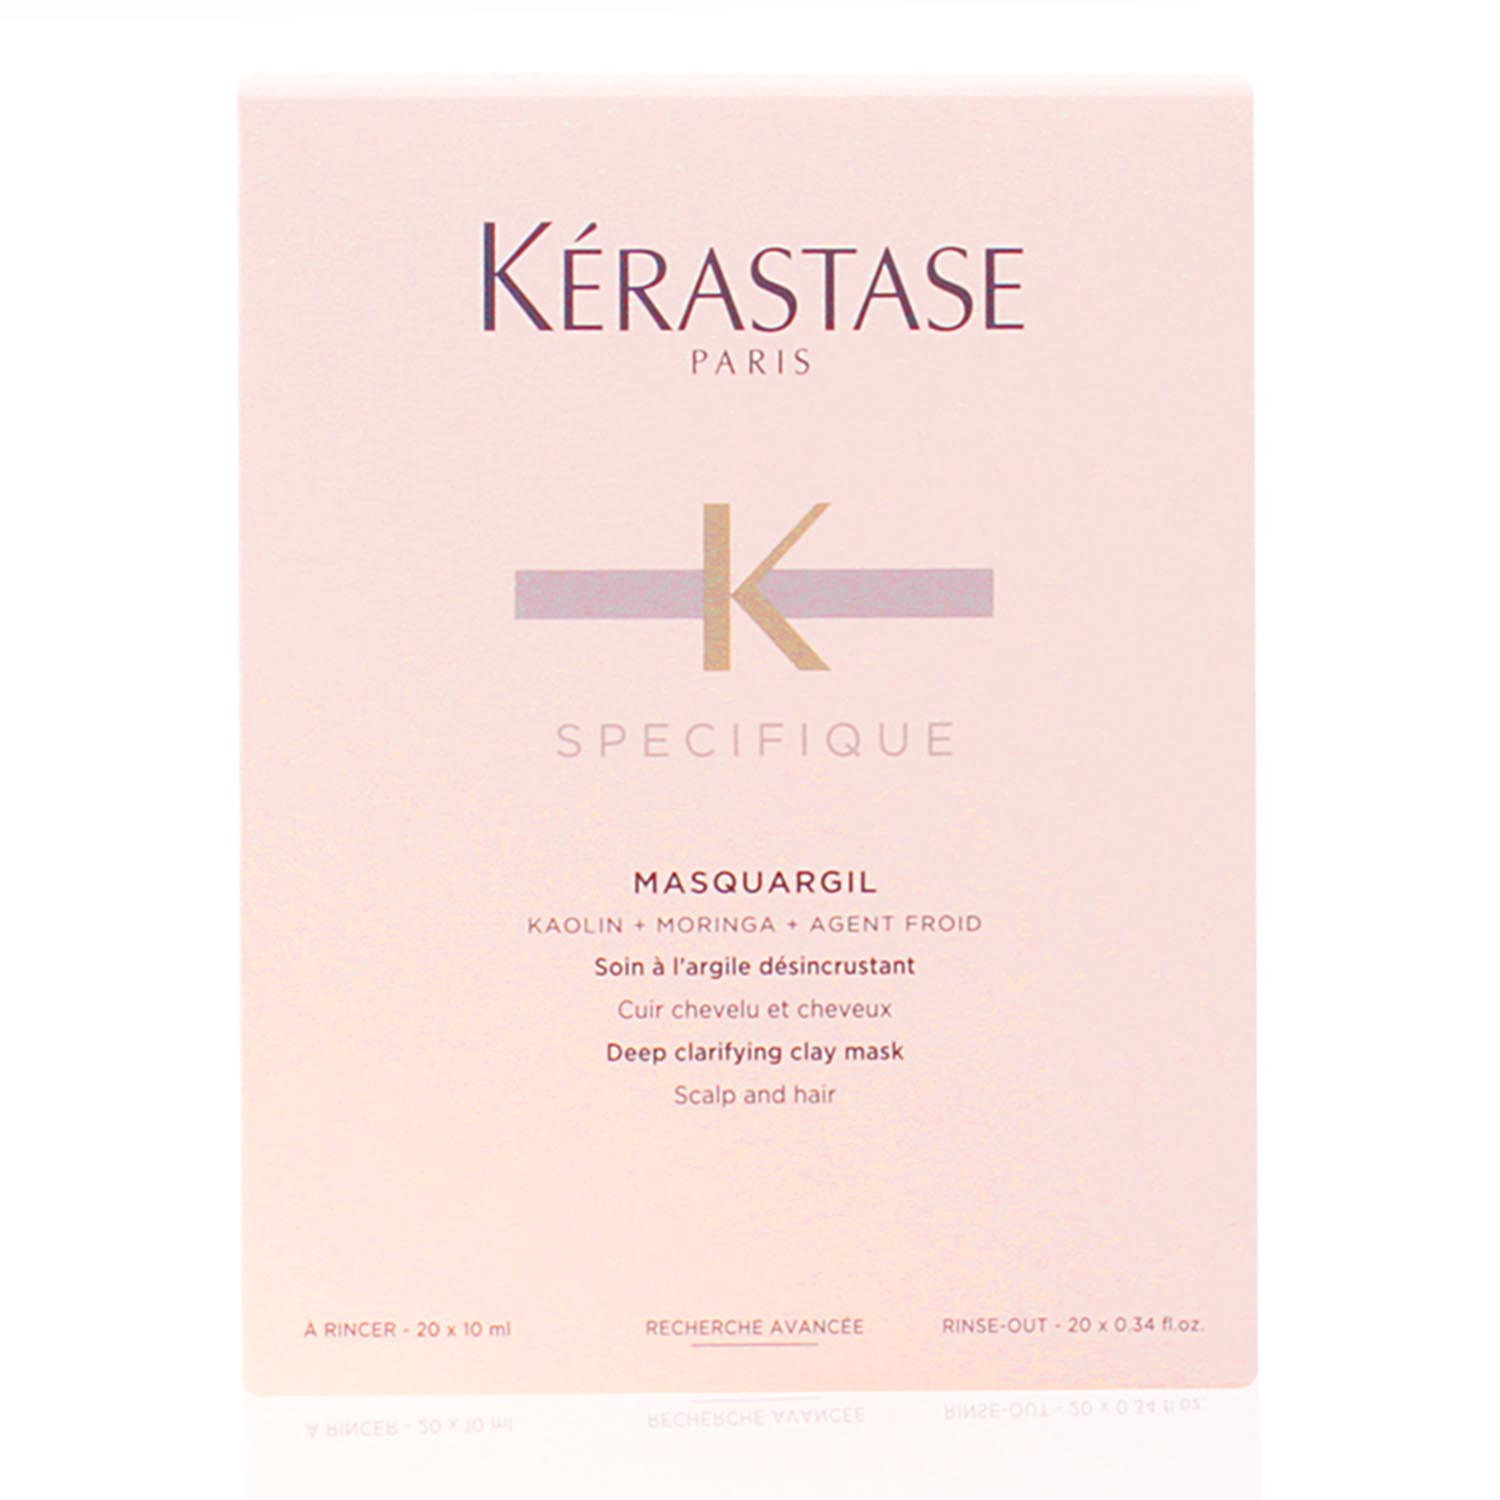 Kerastase specifique masquargil deep clarifying clay mask 20x10ml